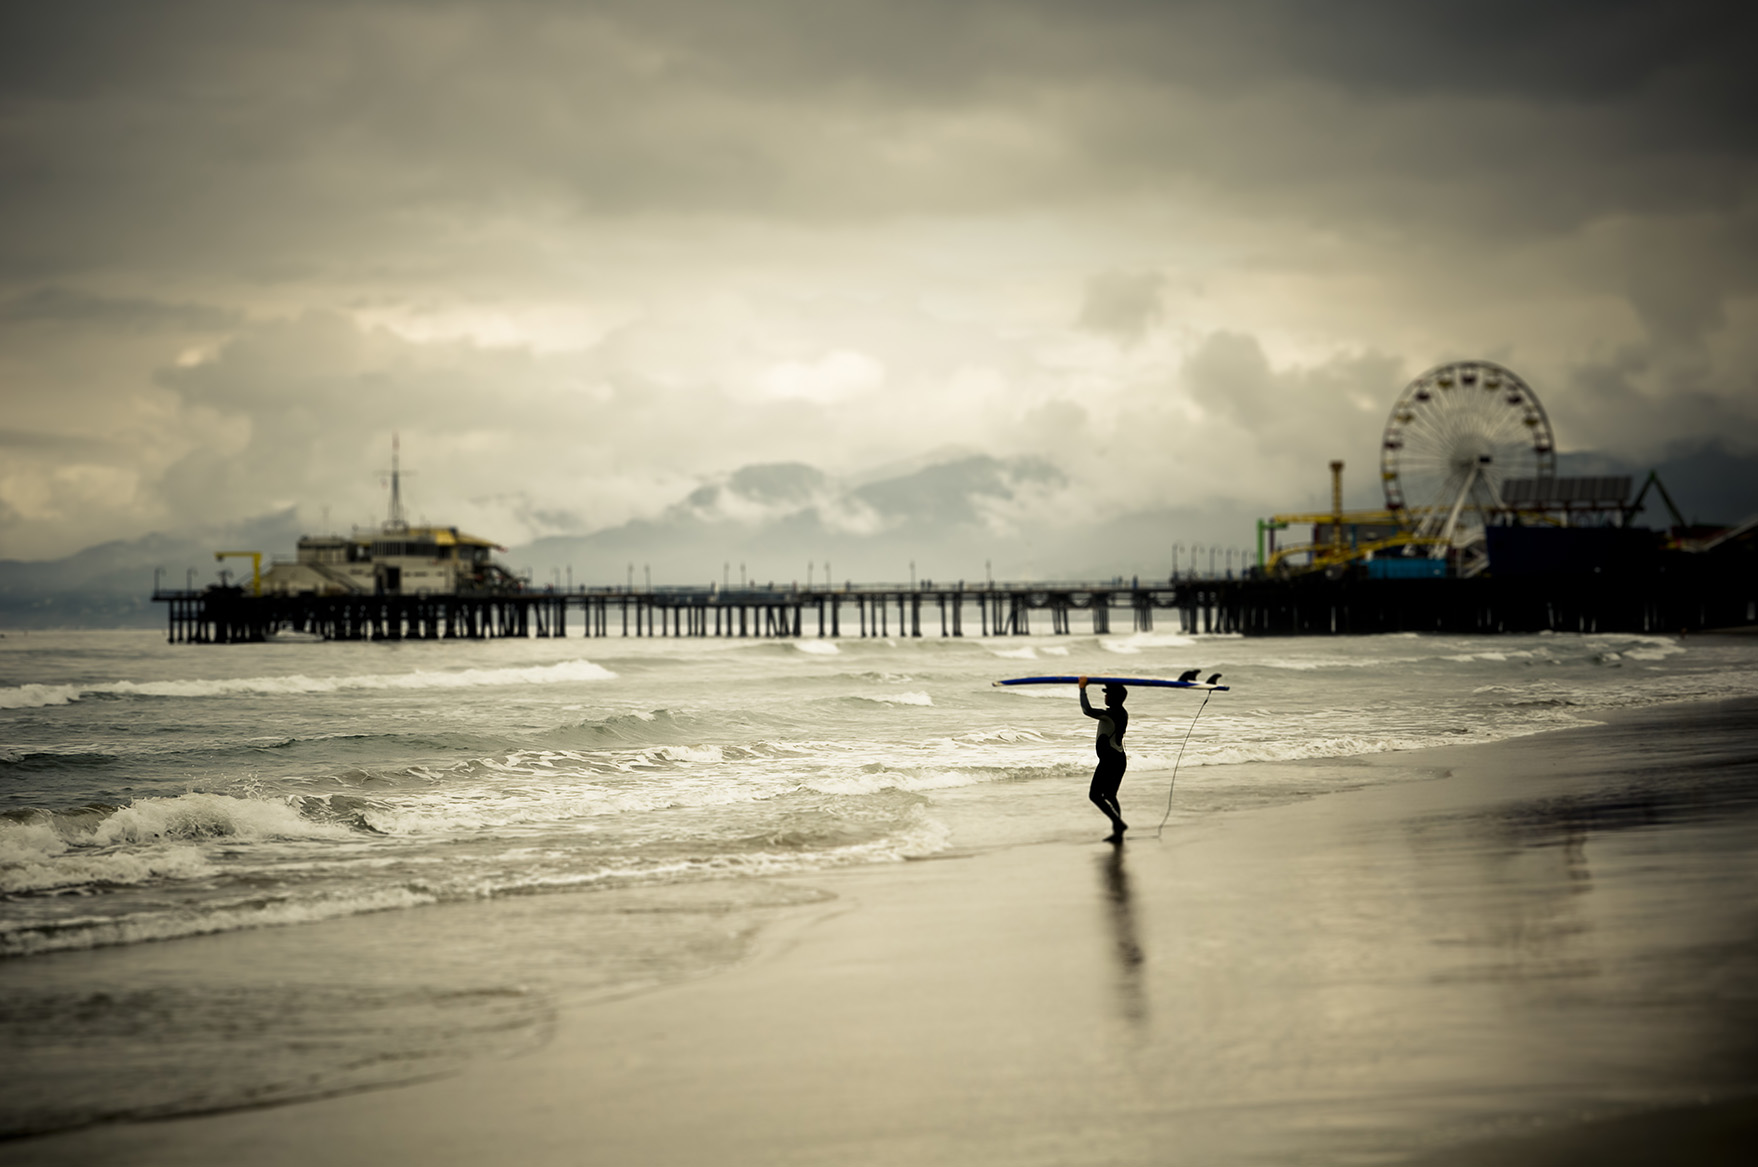 Surfing by the Pier_APF